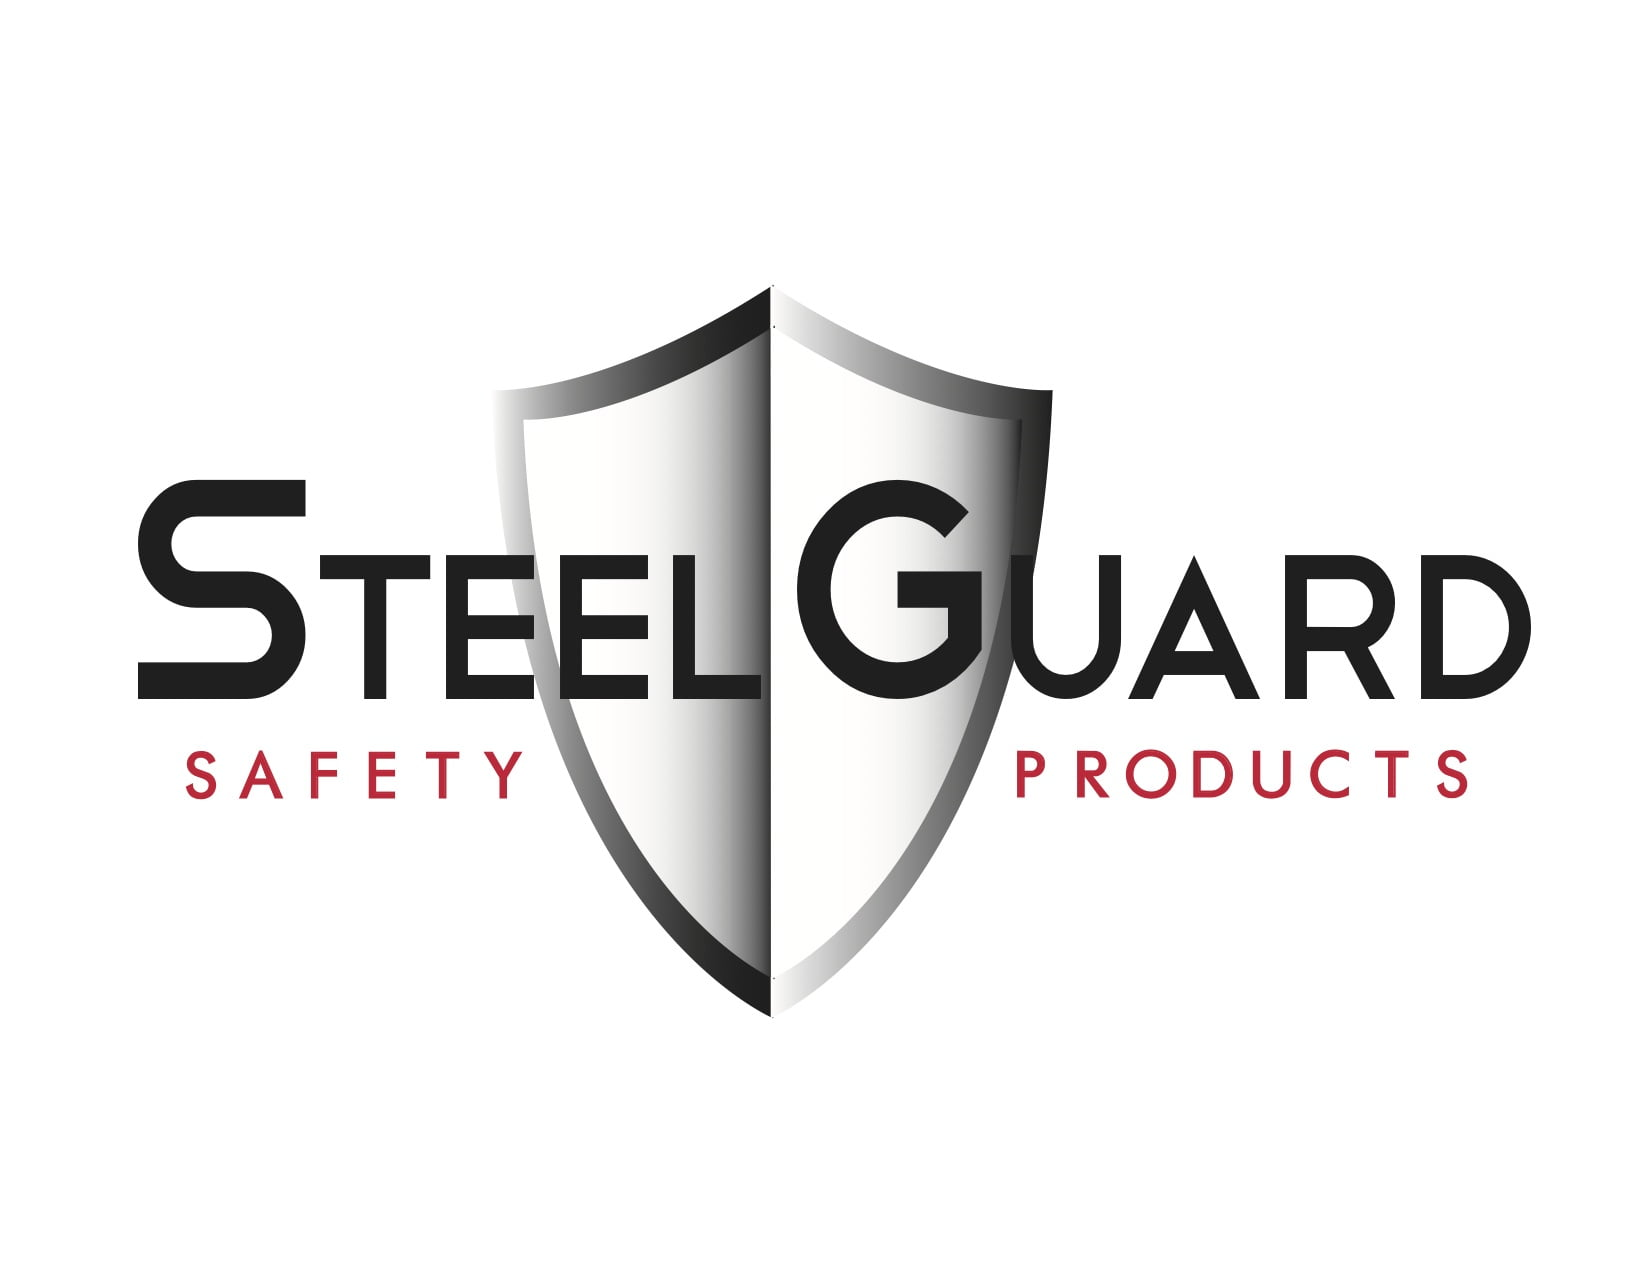 Steel Guard Safety